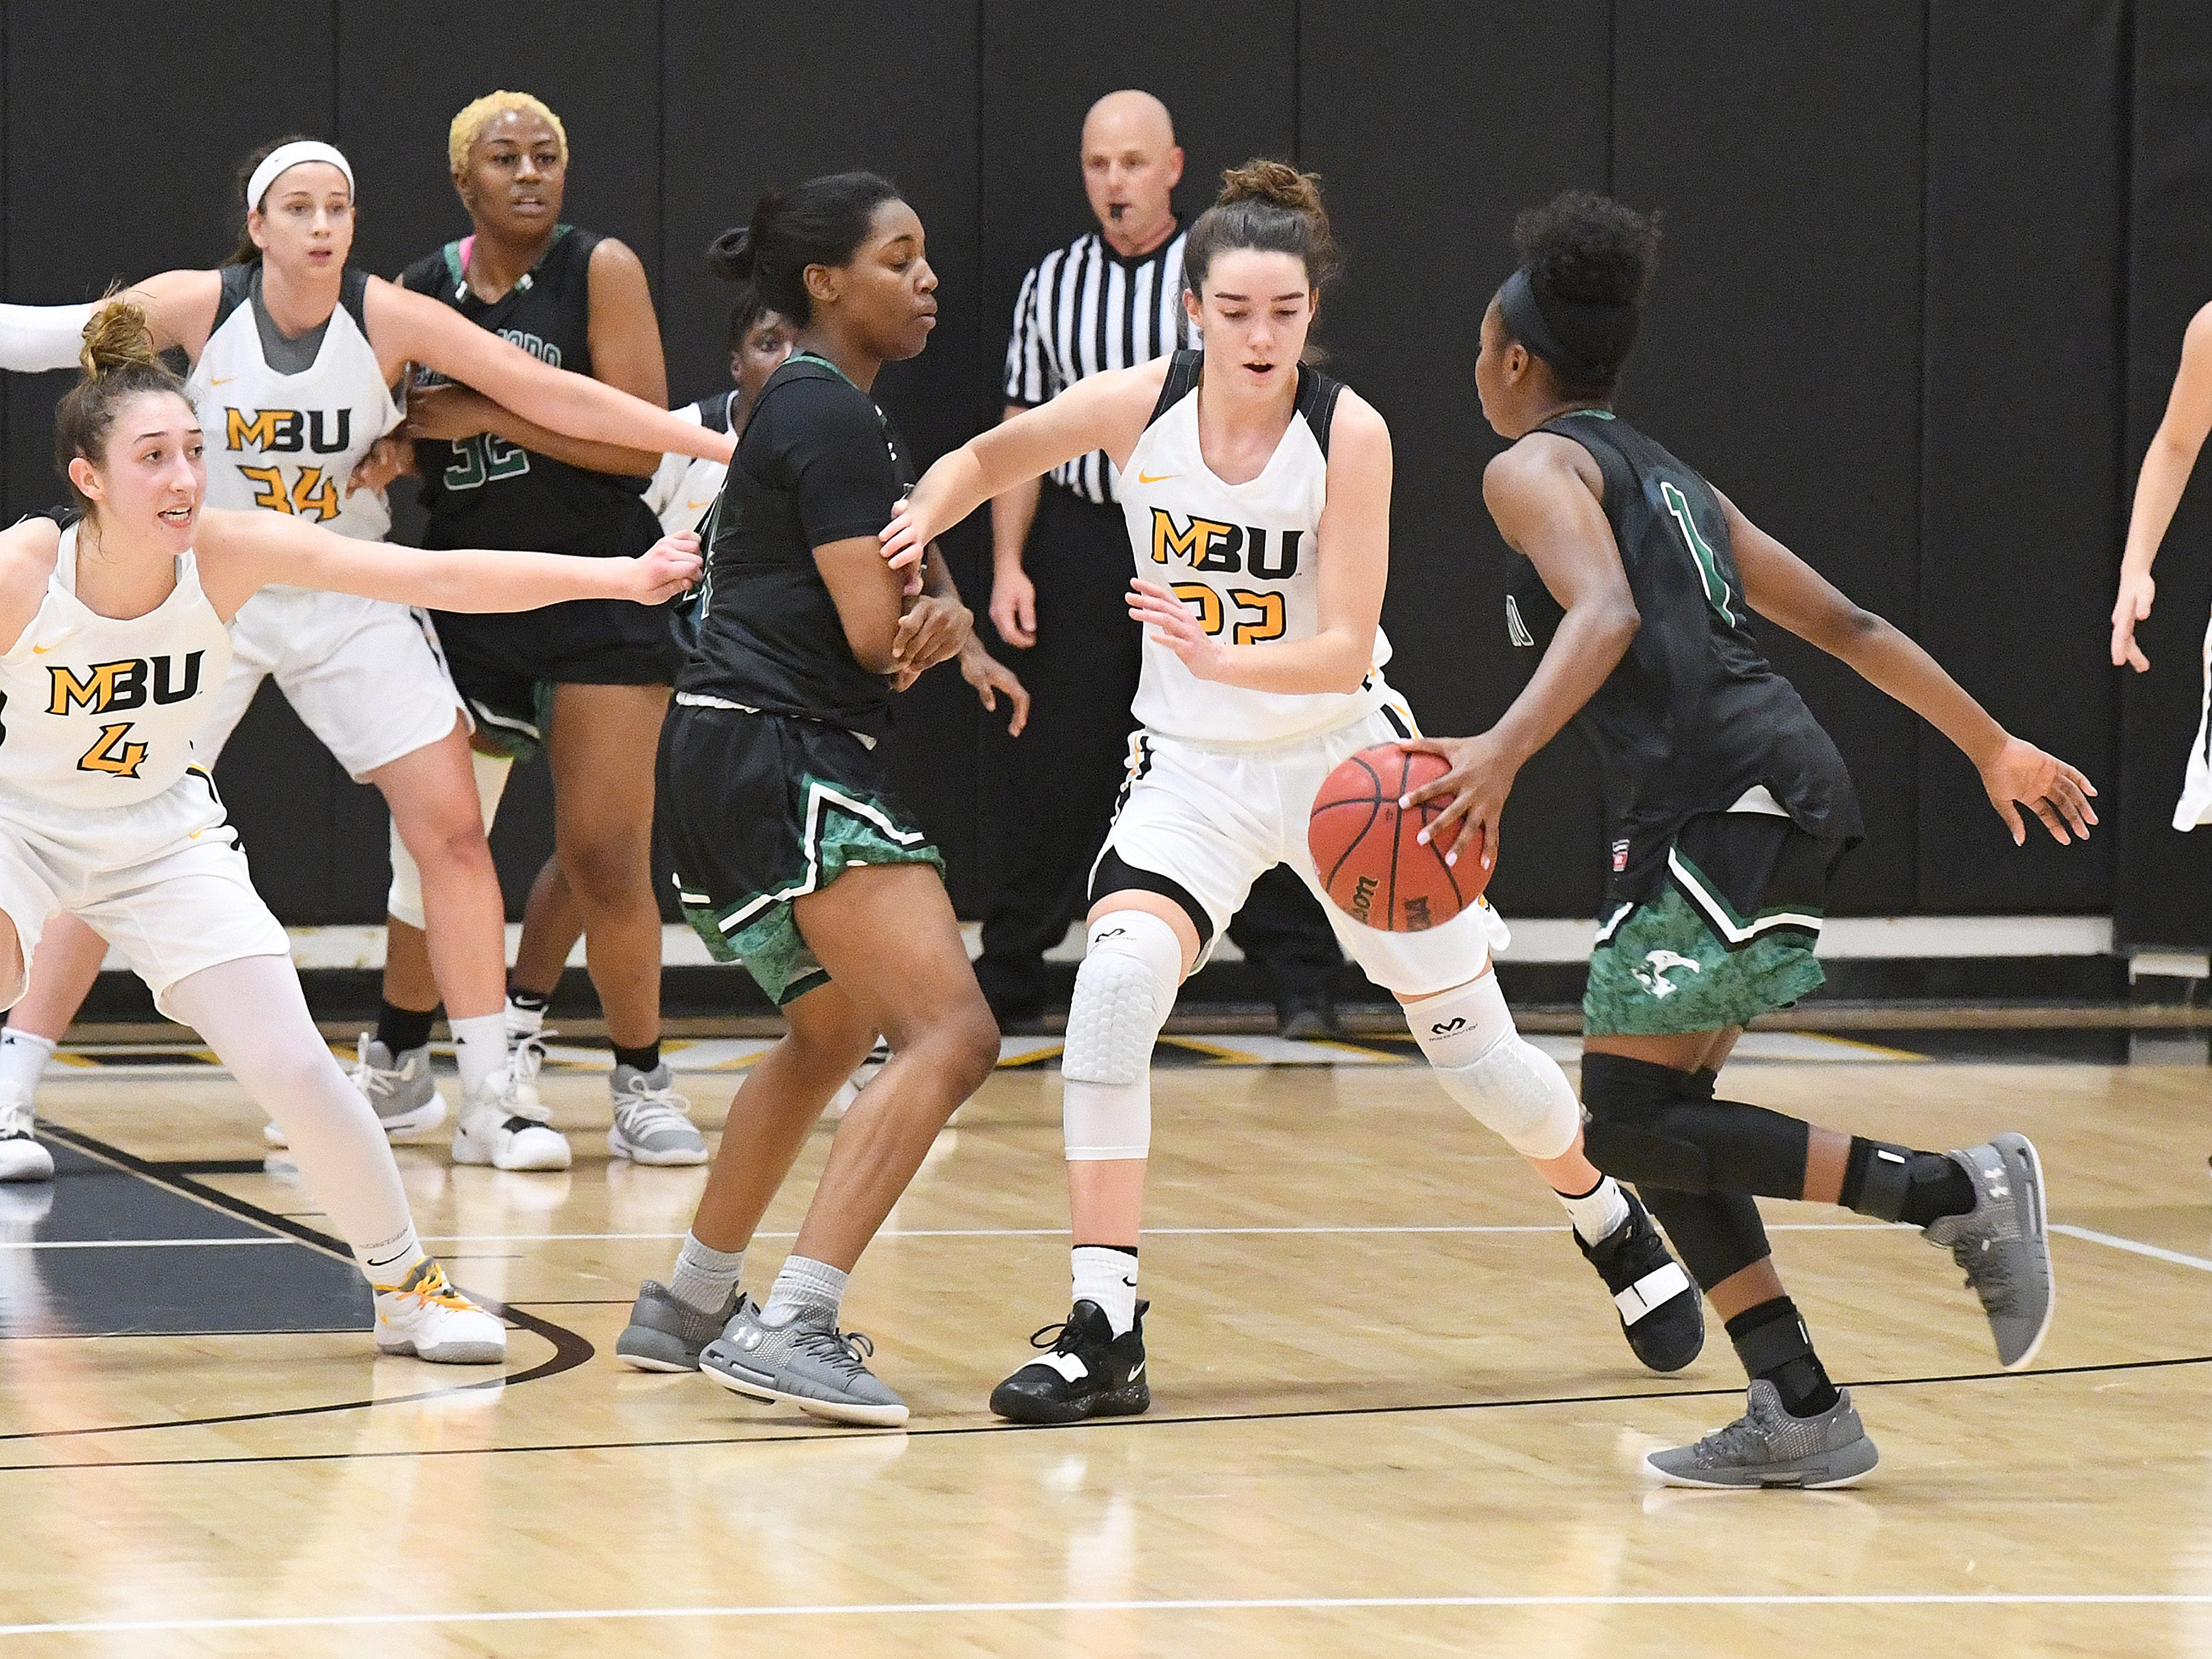 Mary Baldwin's Leah Calhoun (#22) guards against Greensboro's Ashley Free (#1) during a USA South conference game played in Staunton on Jan. 9, 2019.